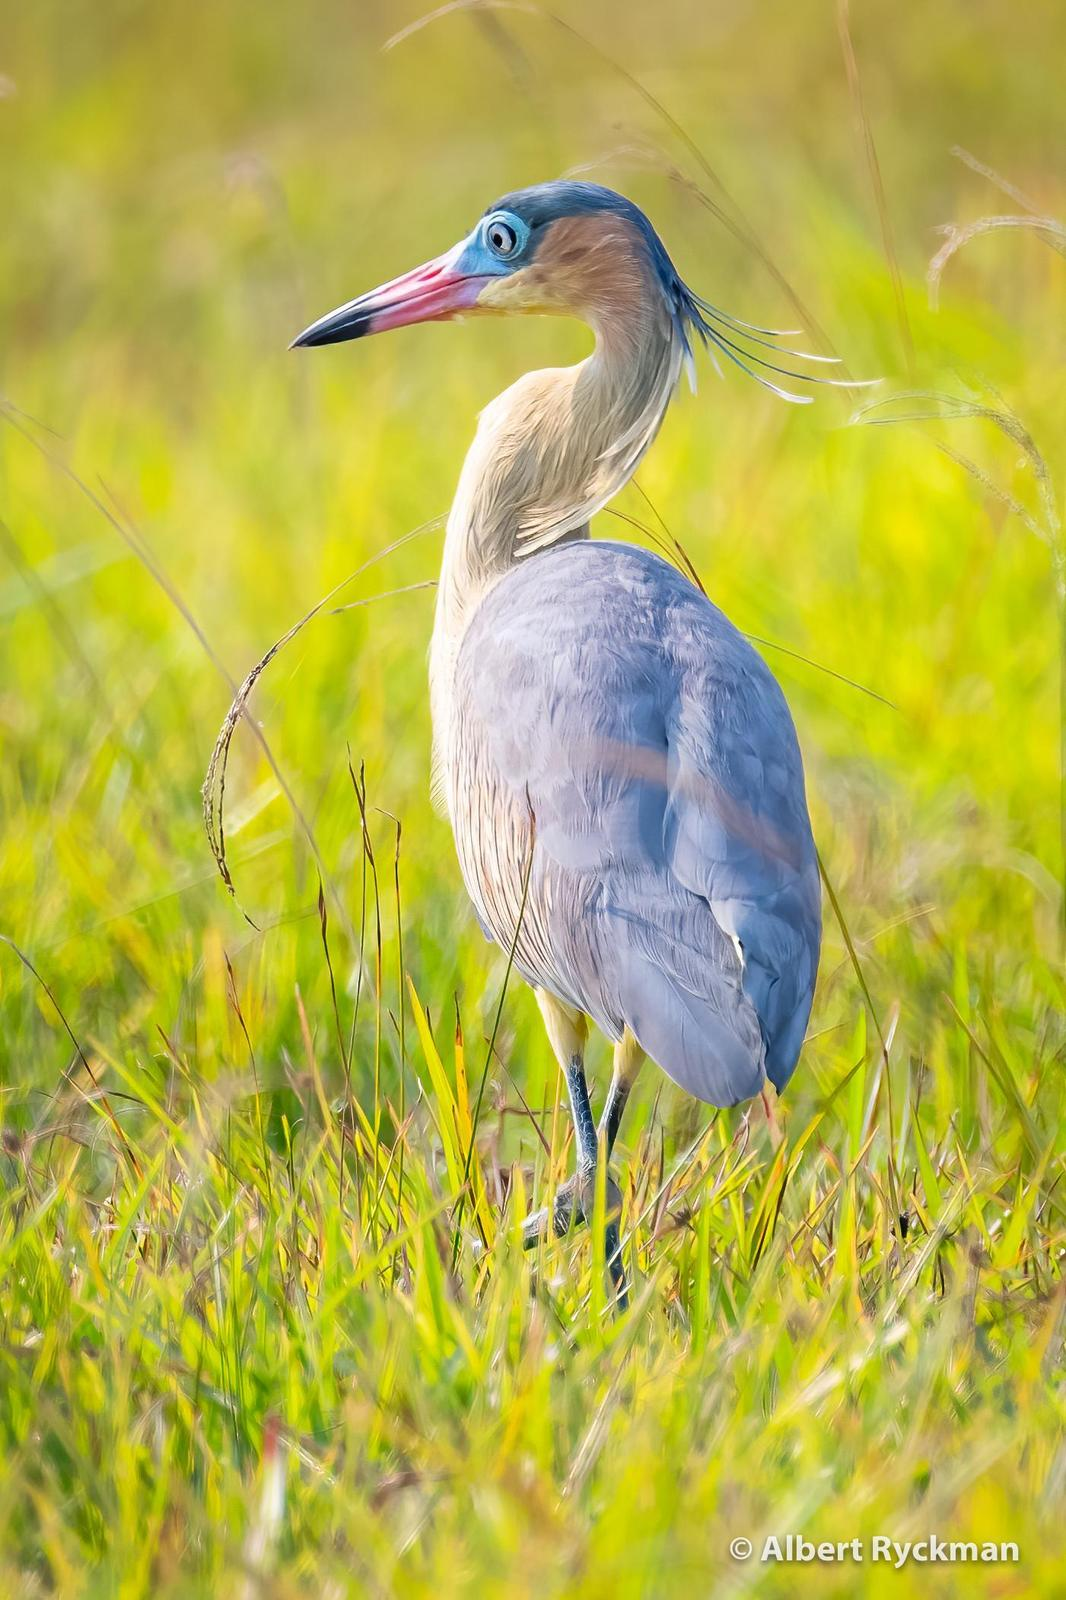 Whistling Heron Photo by Albert Ryckman